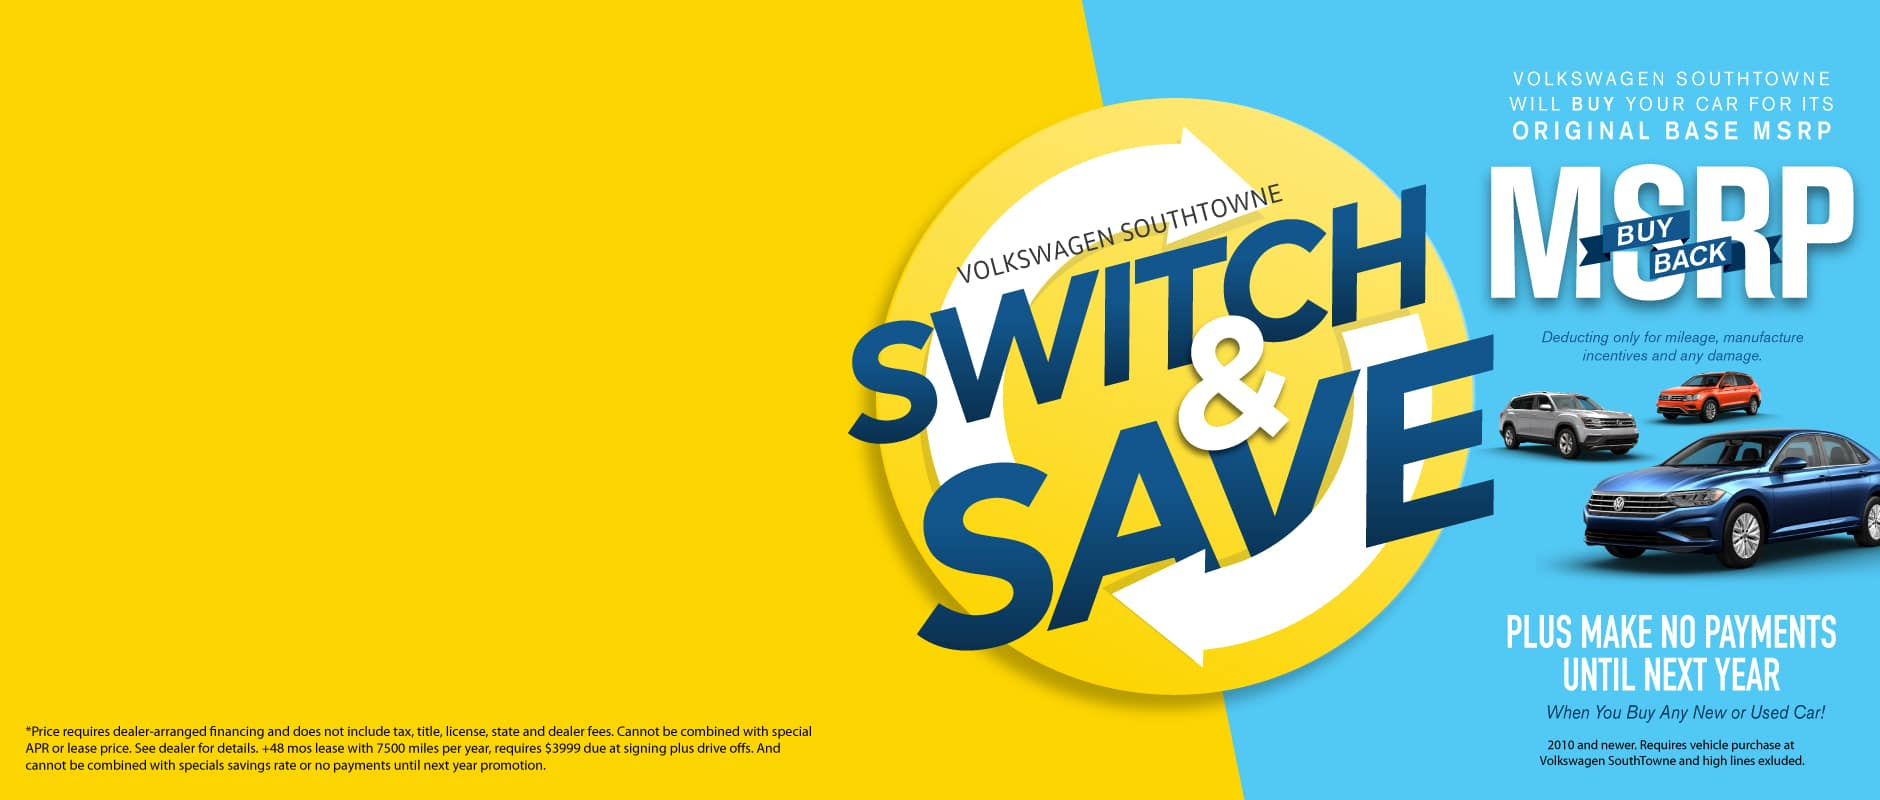 MSRP Buy Back at Volkswagen SouthTowne - Switch and Save Today!